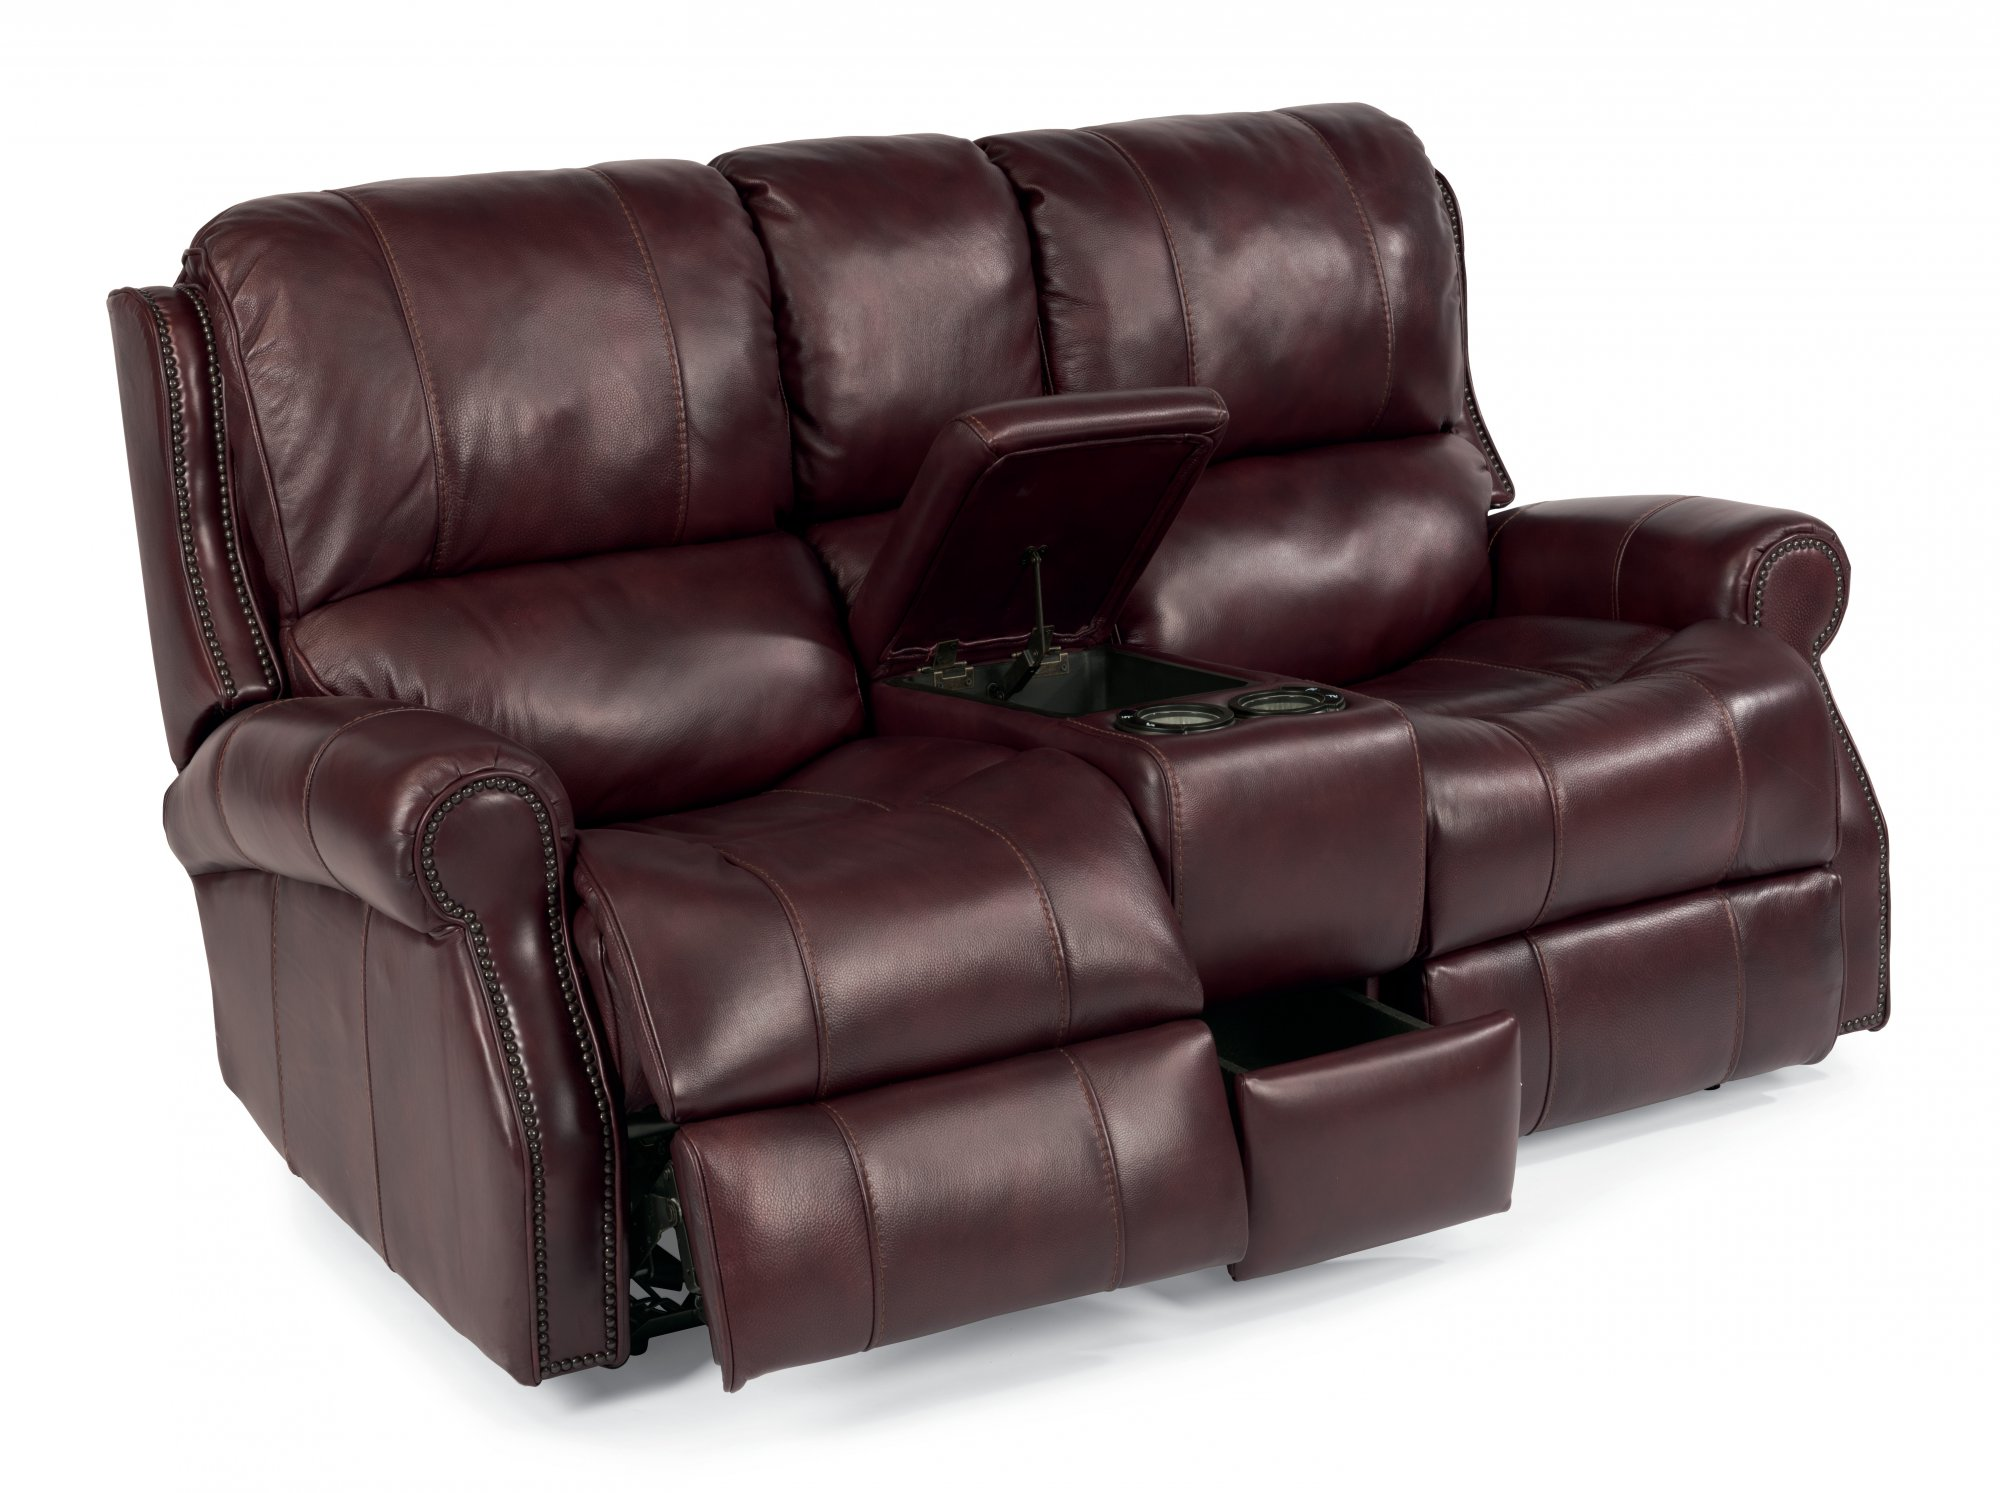 Swell Flexsteel 1533 604P Miles Leather Power Reclining Pdpeps Interior Chair Design Pdpepsorg